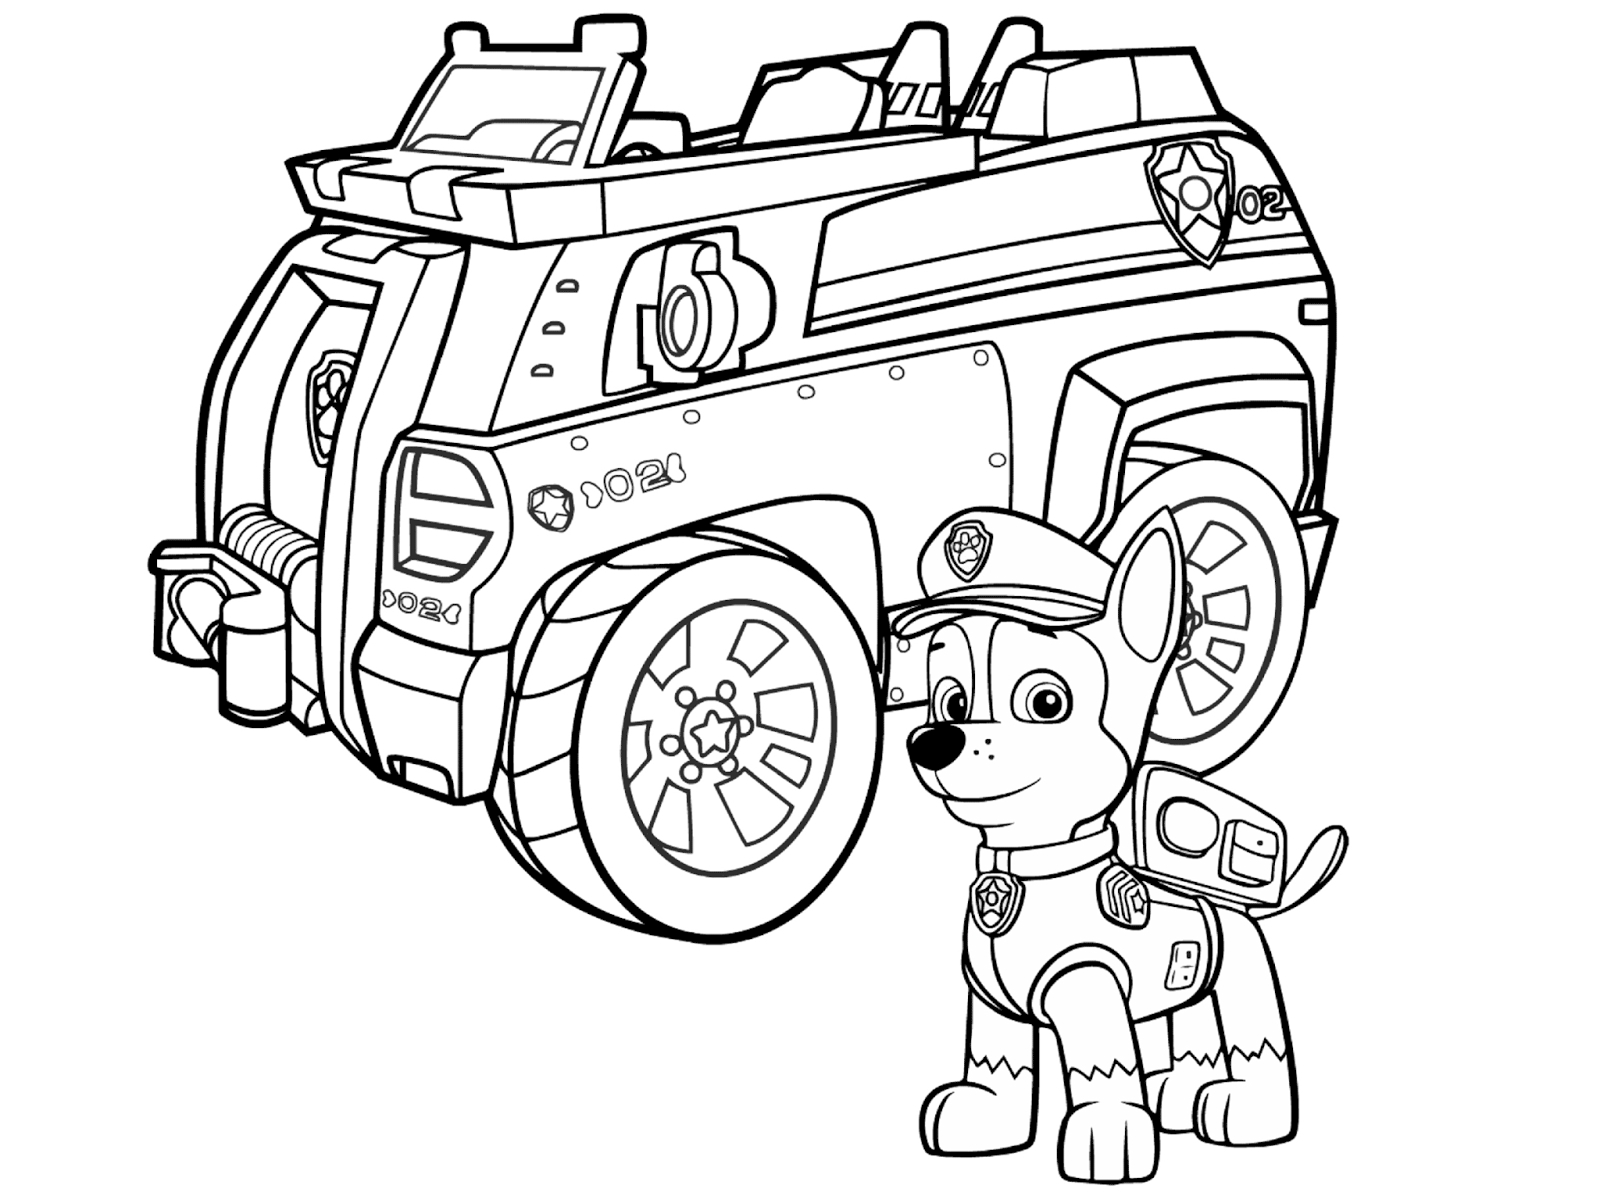 Chase Coloring Page - Mobile Nickelodeon Paw Patrol Chase Coloring Pages